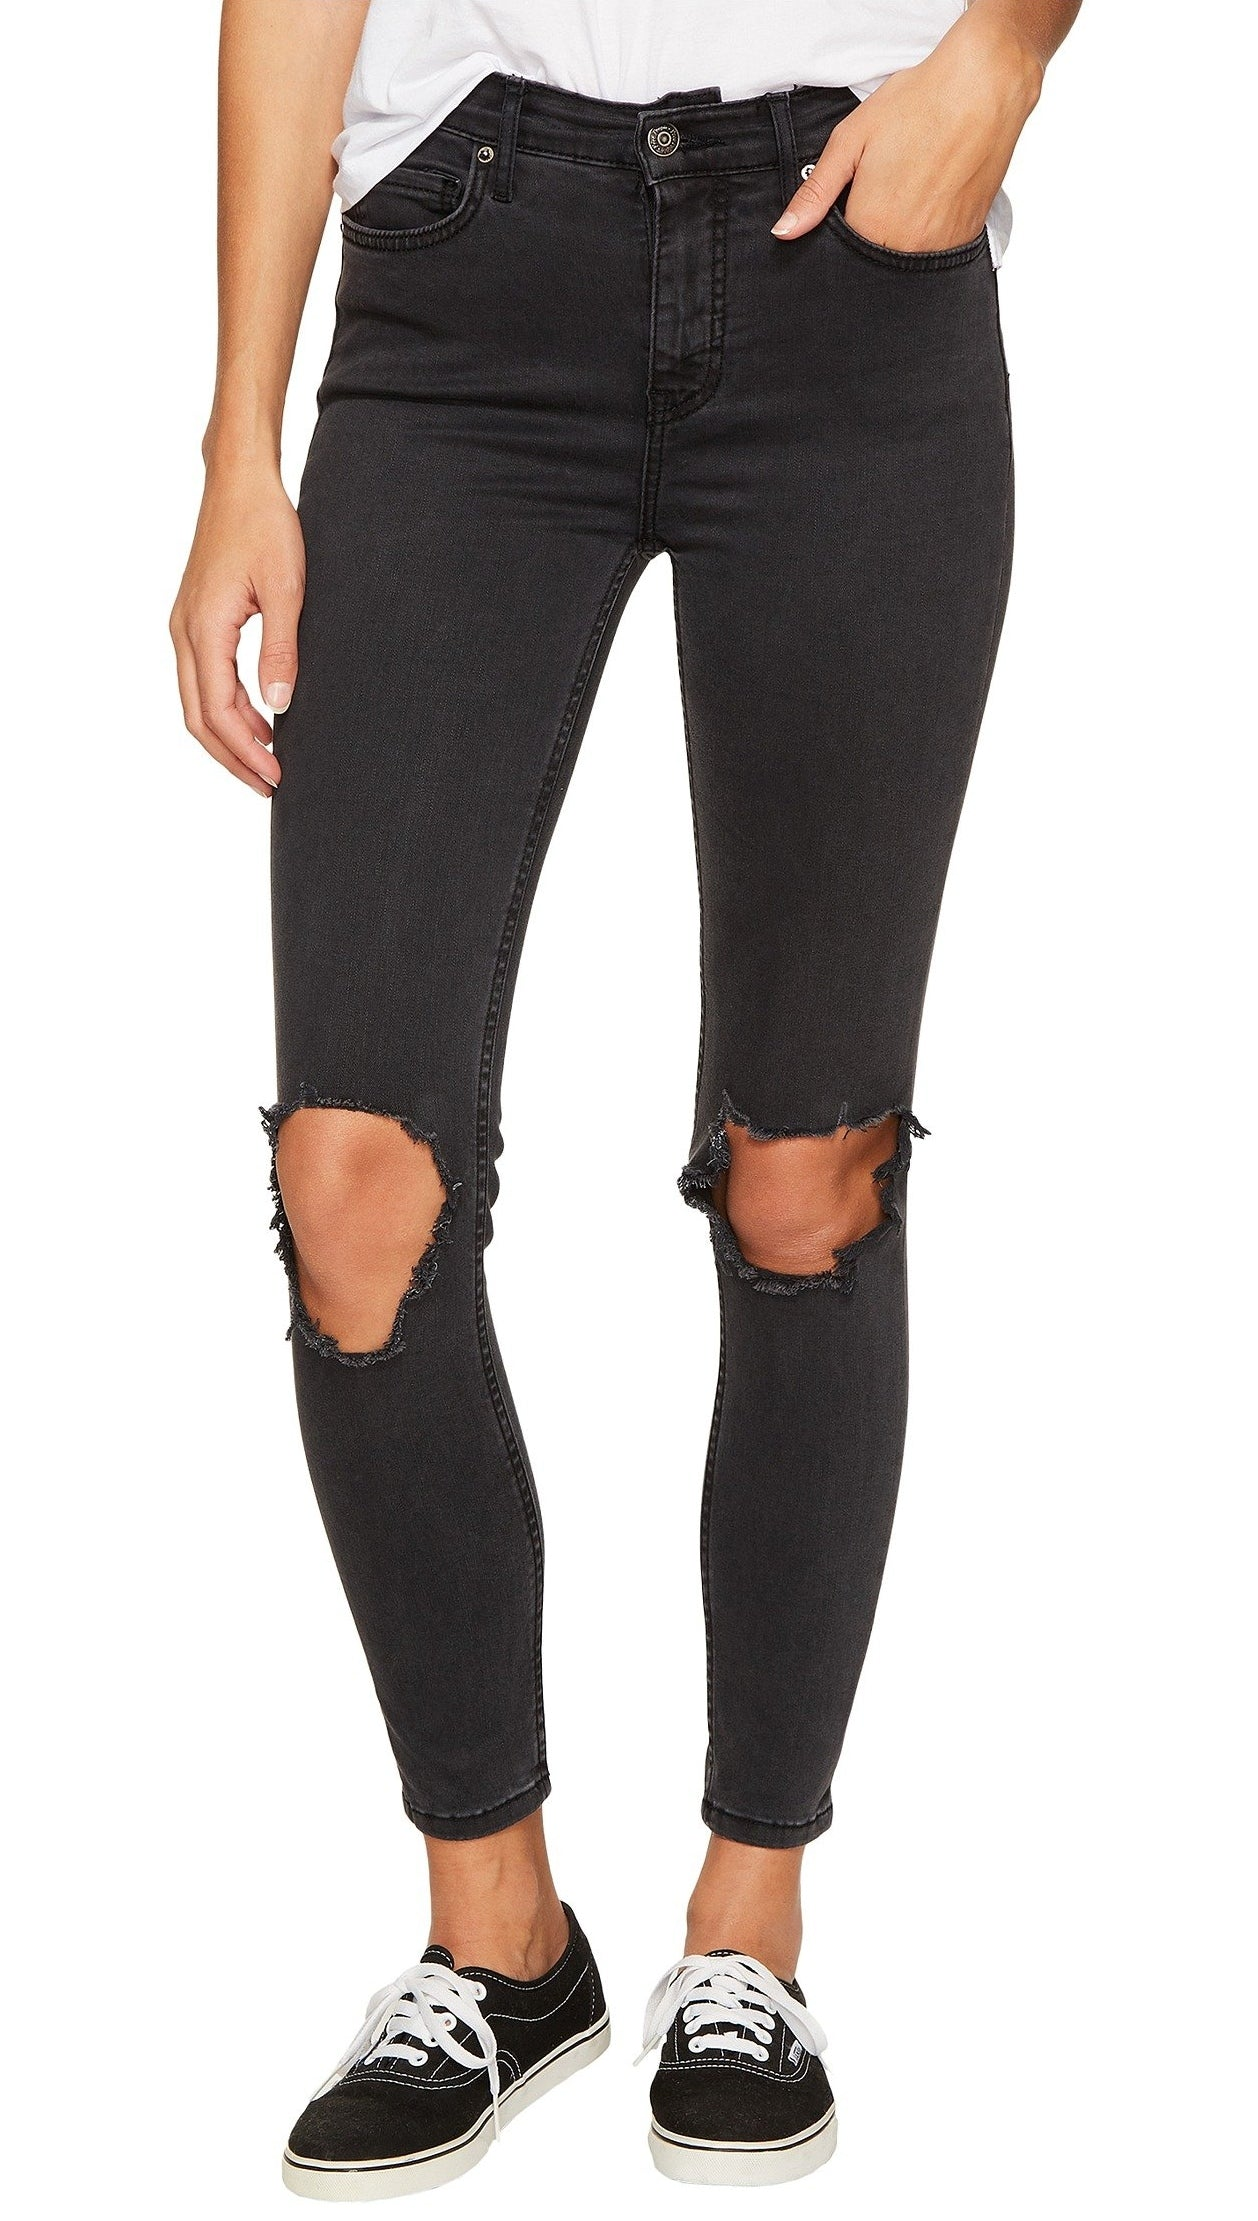 Free People High Rise Busted Skinny Knee Denim Jean Carbon Black ShopAA